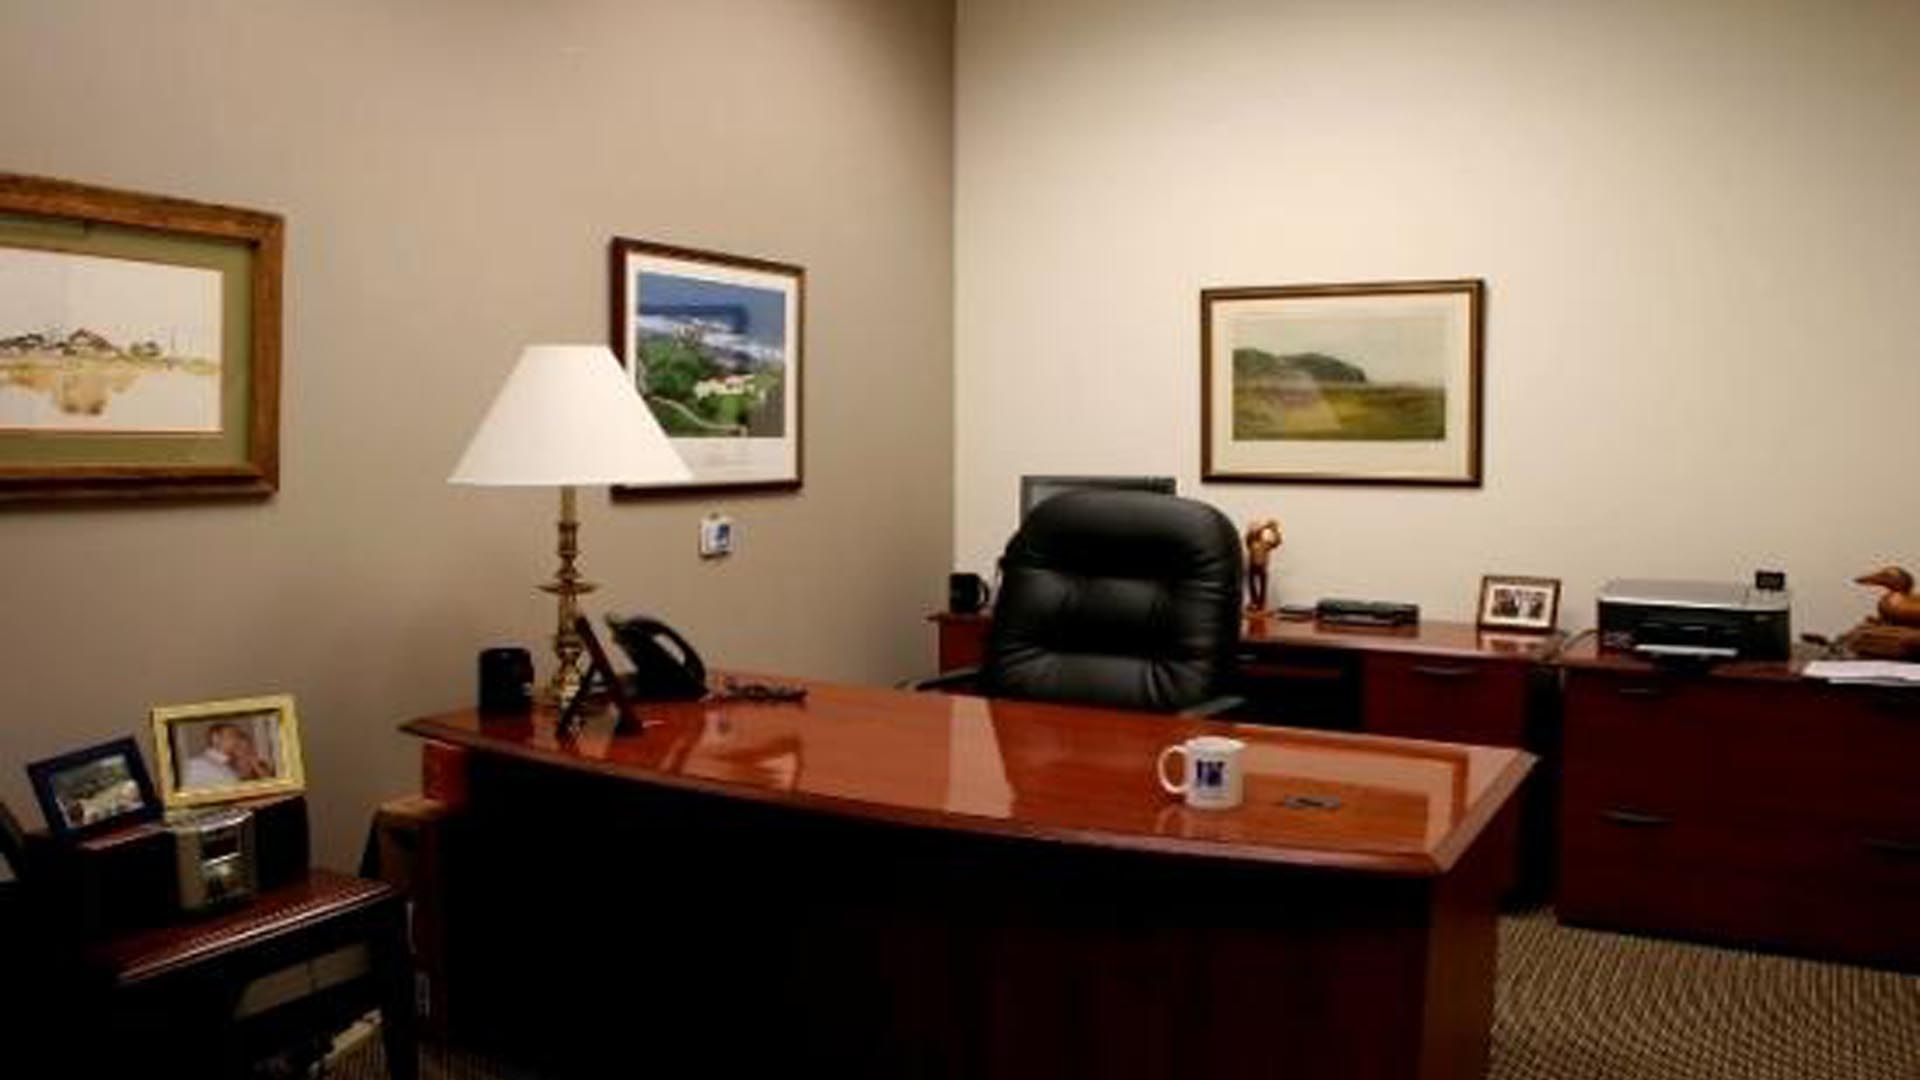 Simple Office Room Interior Office Room Furniture Office Wall